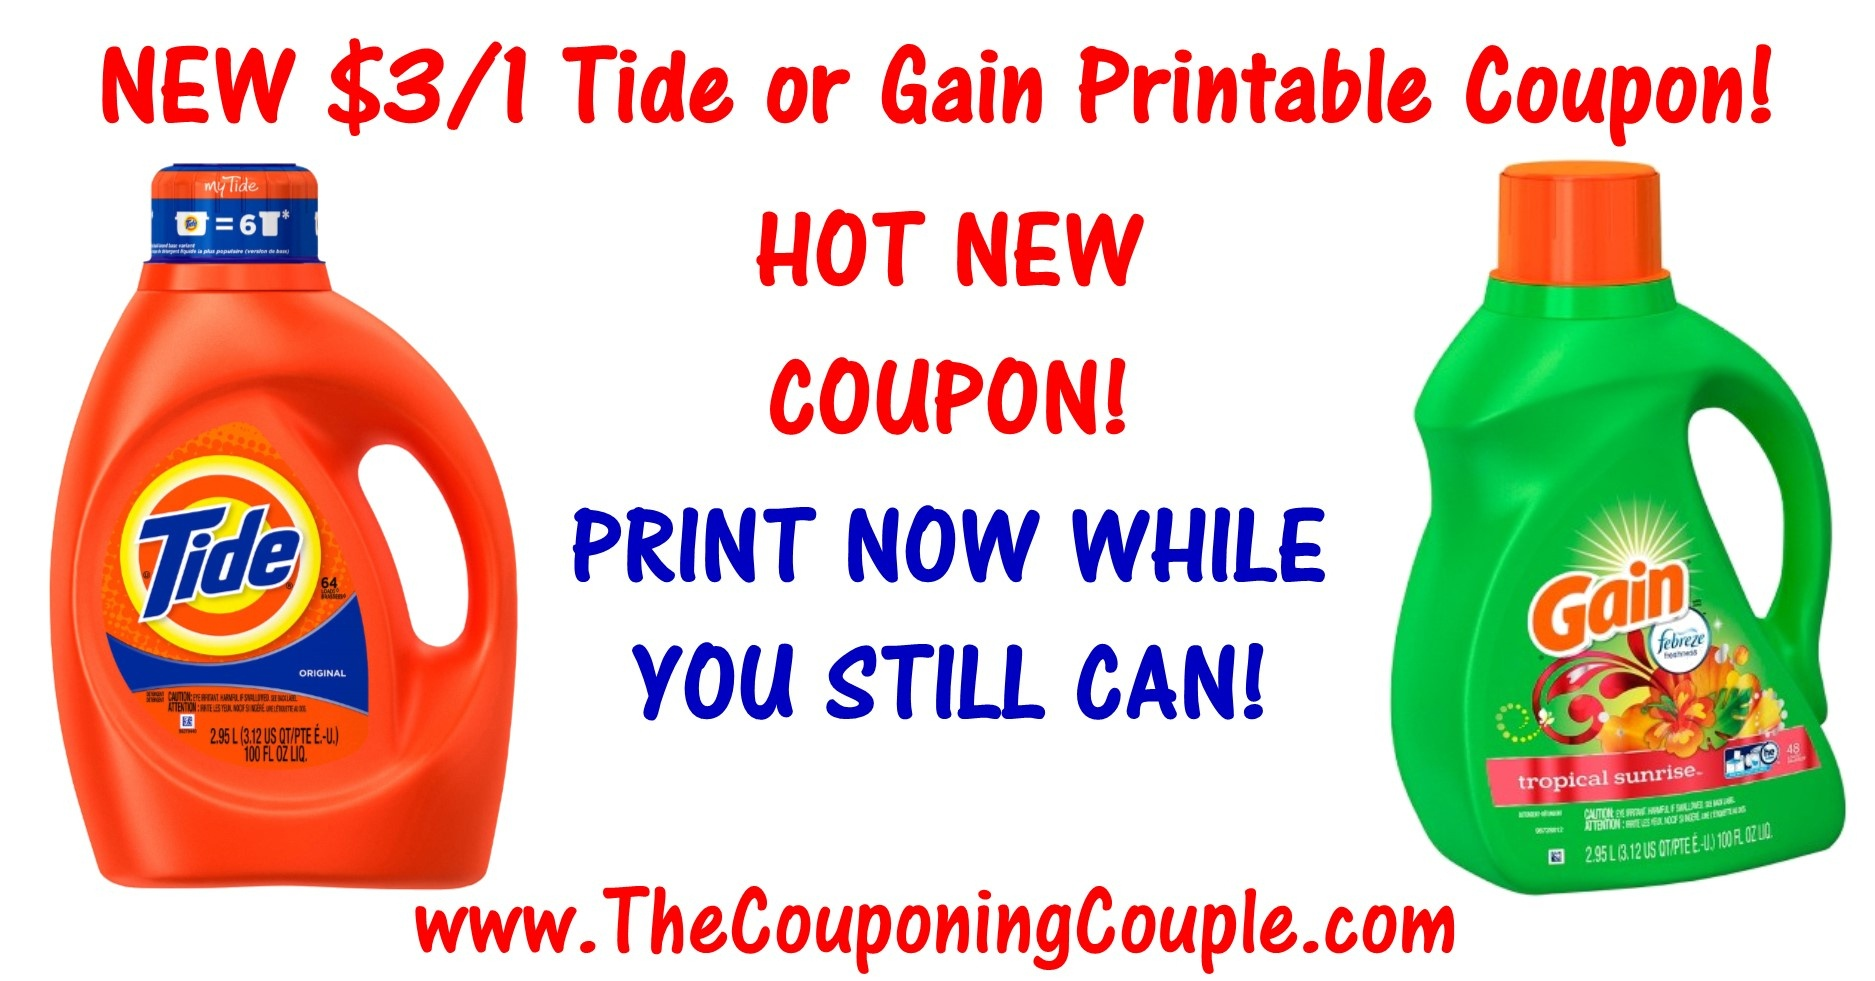 Hot New $3.00 Tide Printable Coupon Or Gain Printable Coupon ~ Print - Gain Coupons Free Printable